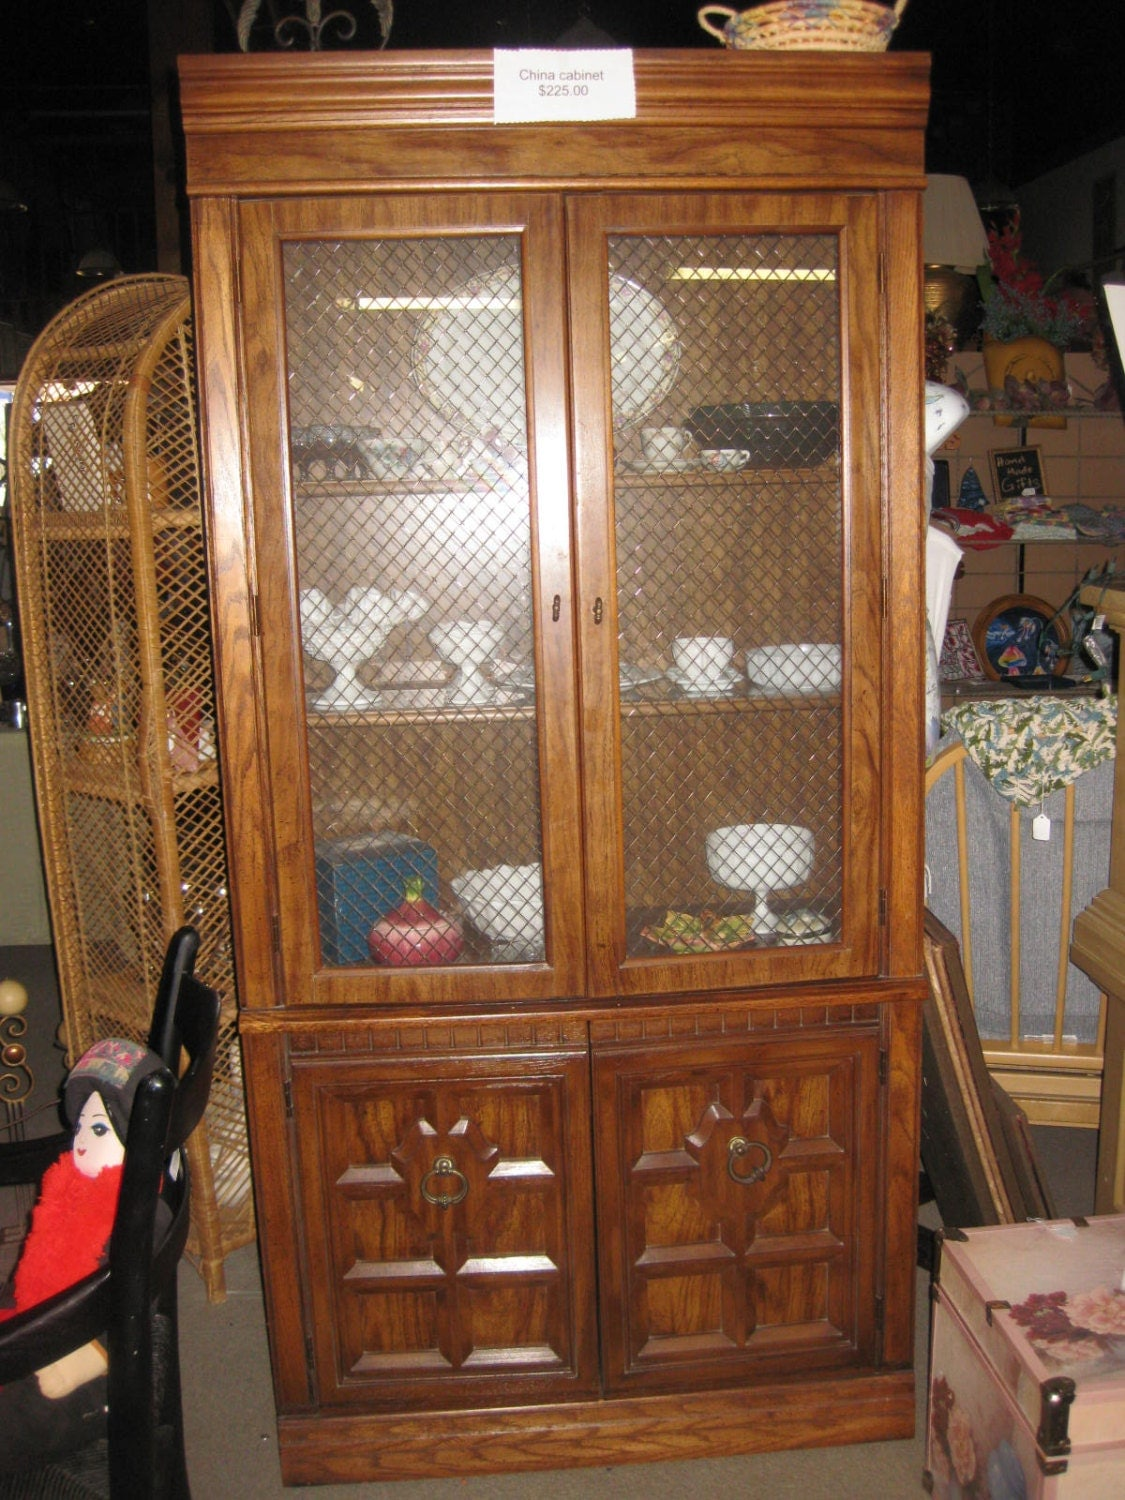 Great vintage find by feartheredfindings 225 00 usd http ift tt